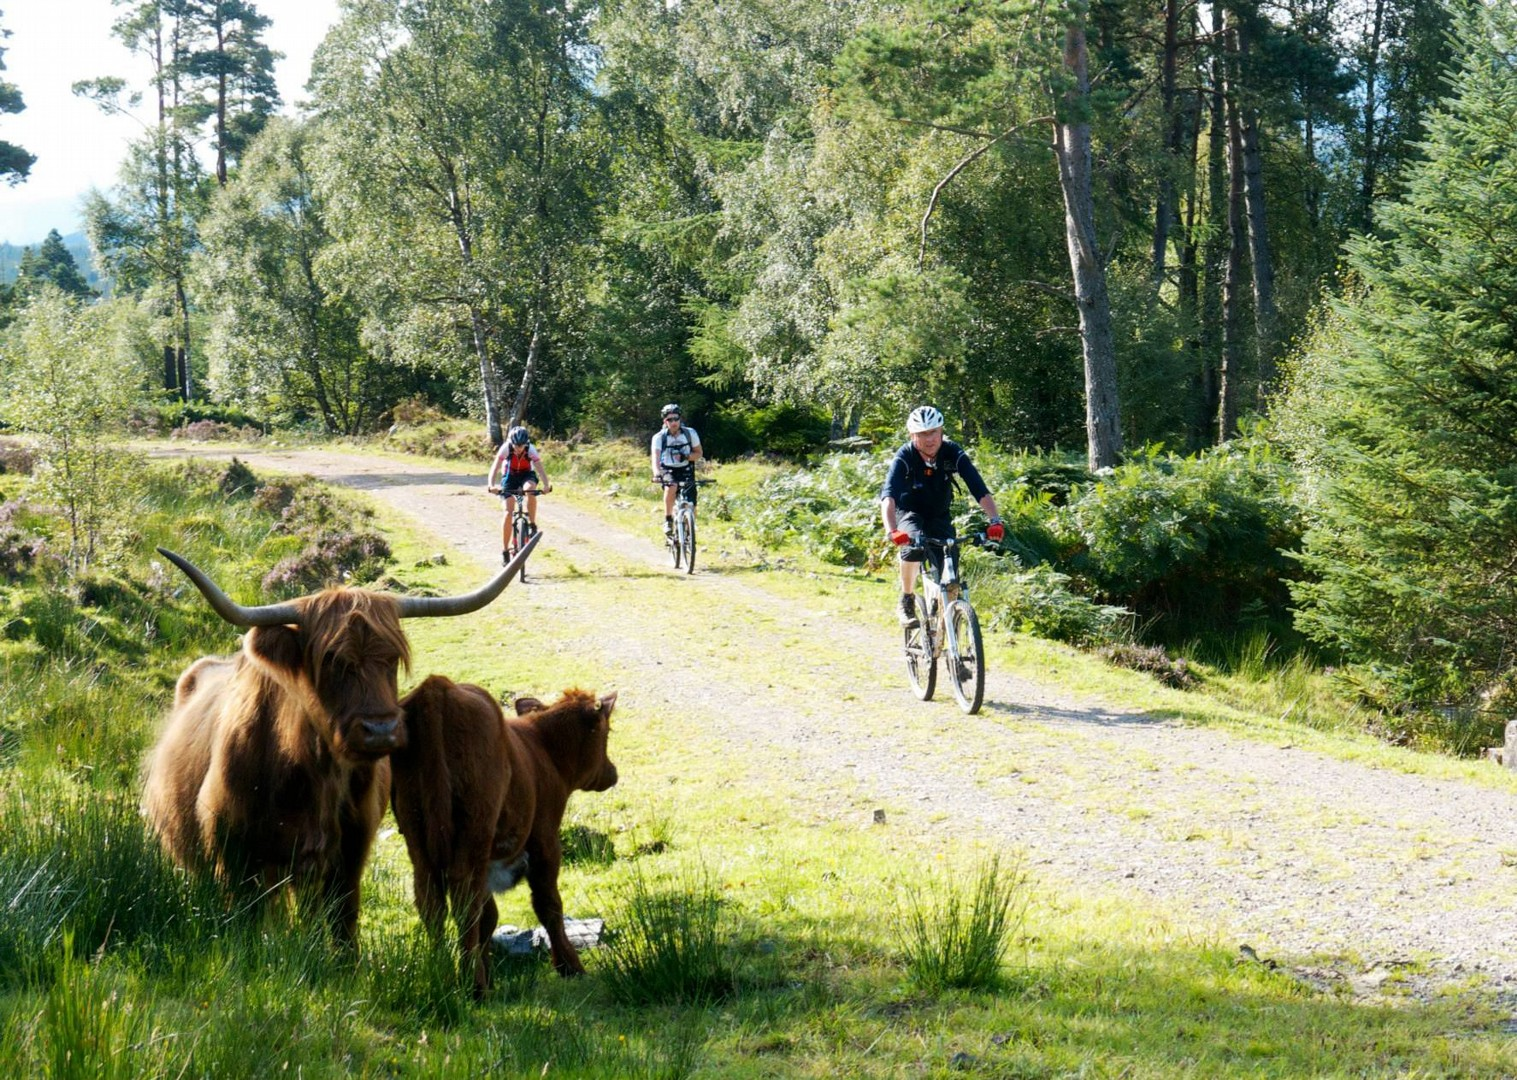 highland-cows-scottish-cycling-holiday.jpg - Scotland - Celtic Crossing - Guided Mountain Bike Holiday - Mountain Biking